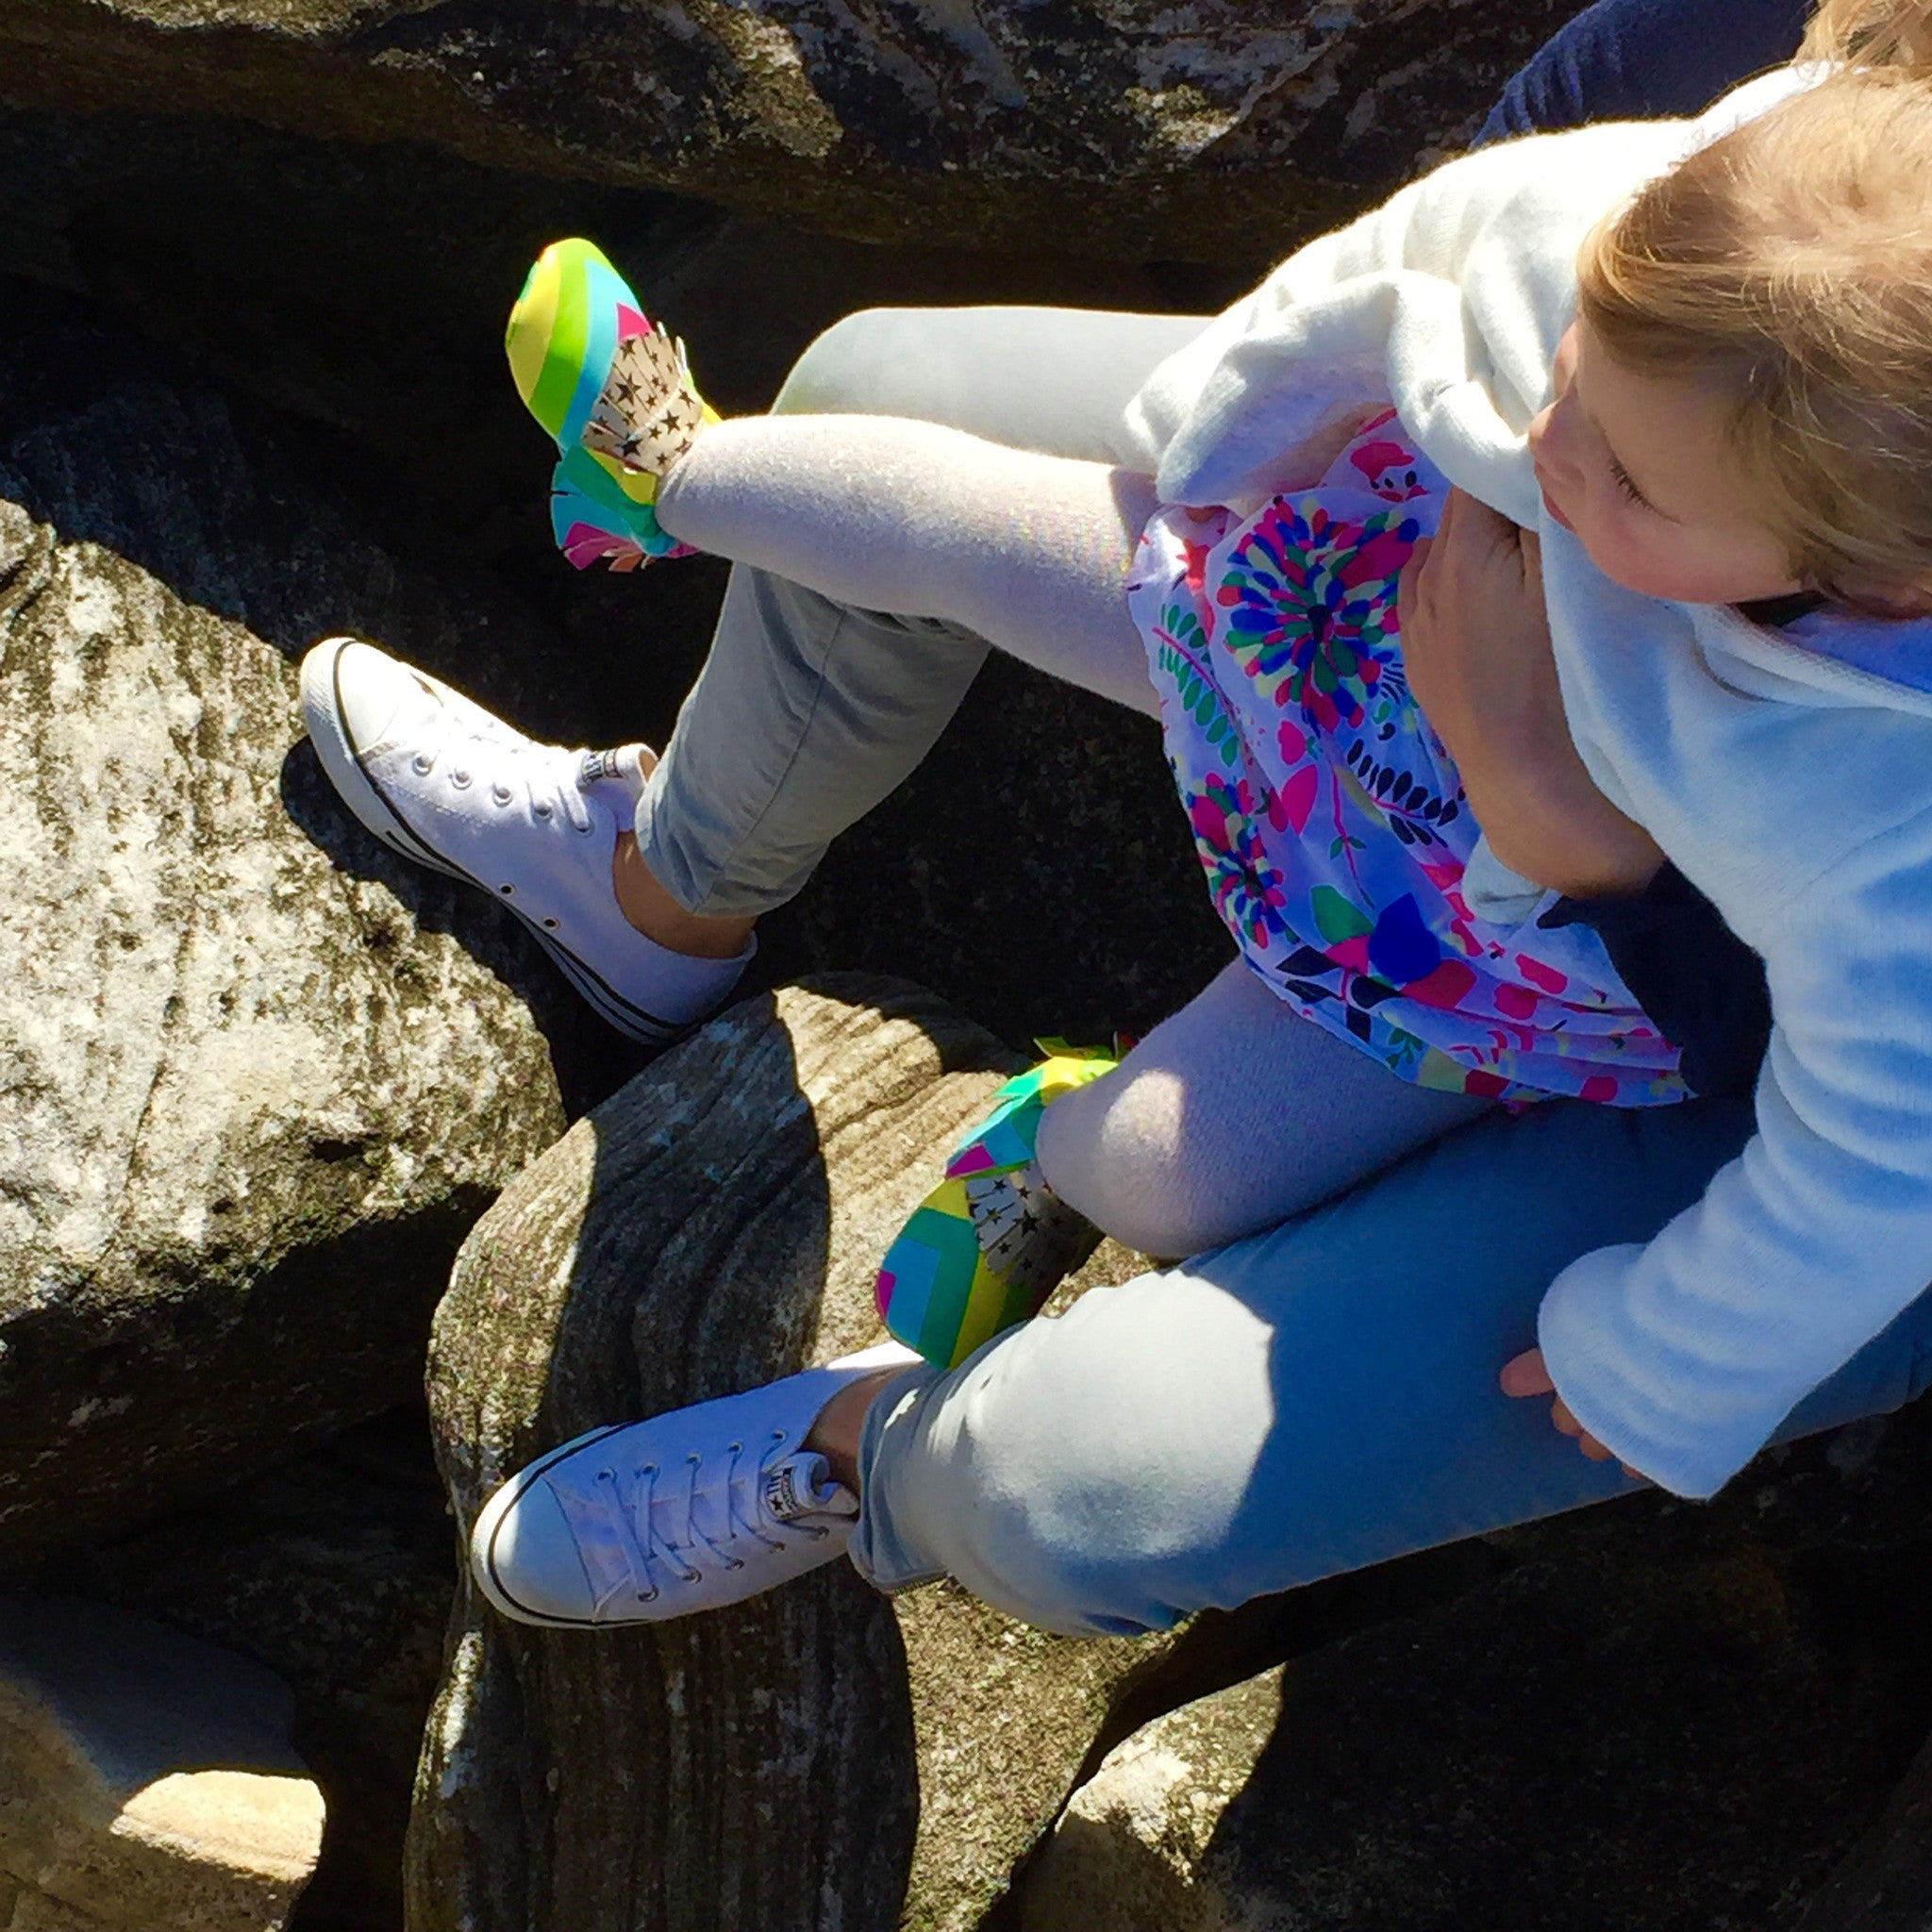 Moccasin, Pre-Walker Baby & Toddler Shoes - Rainbow, Toddler Love